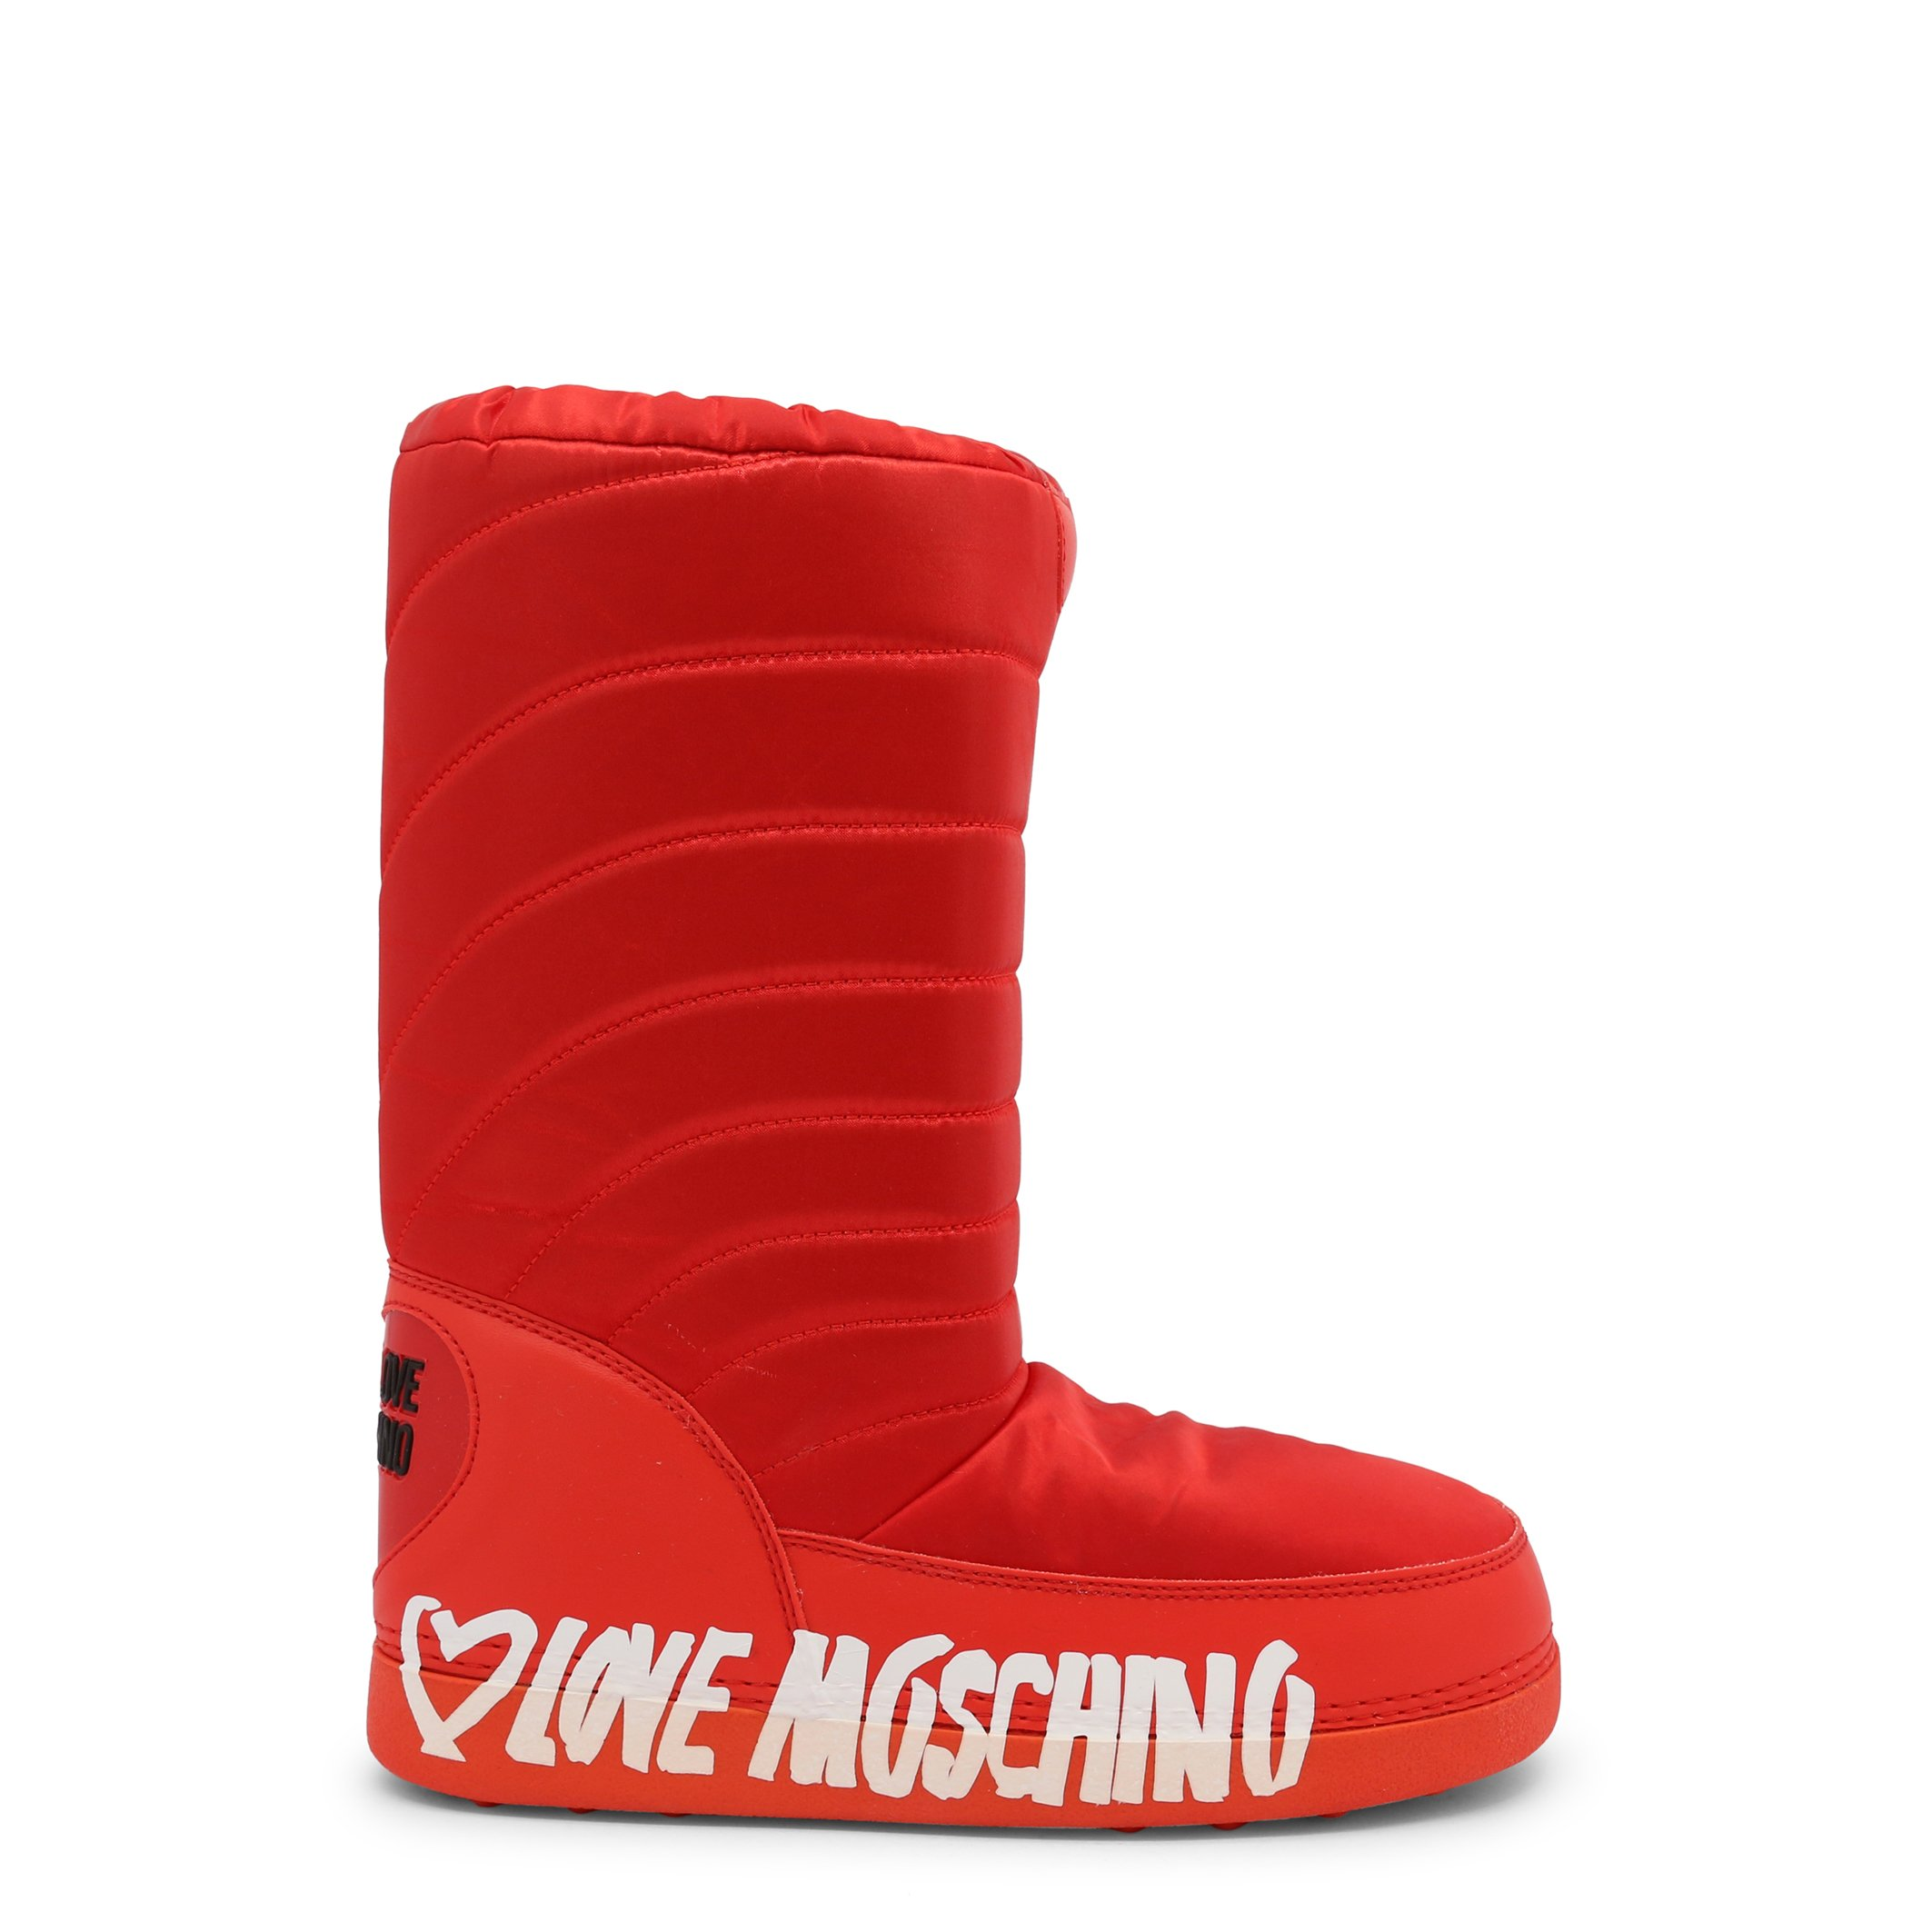 Love Moschino Women's Ankle Boot Various Colours JA24132G1DISK - red EU 35